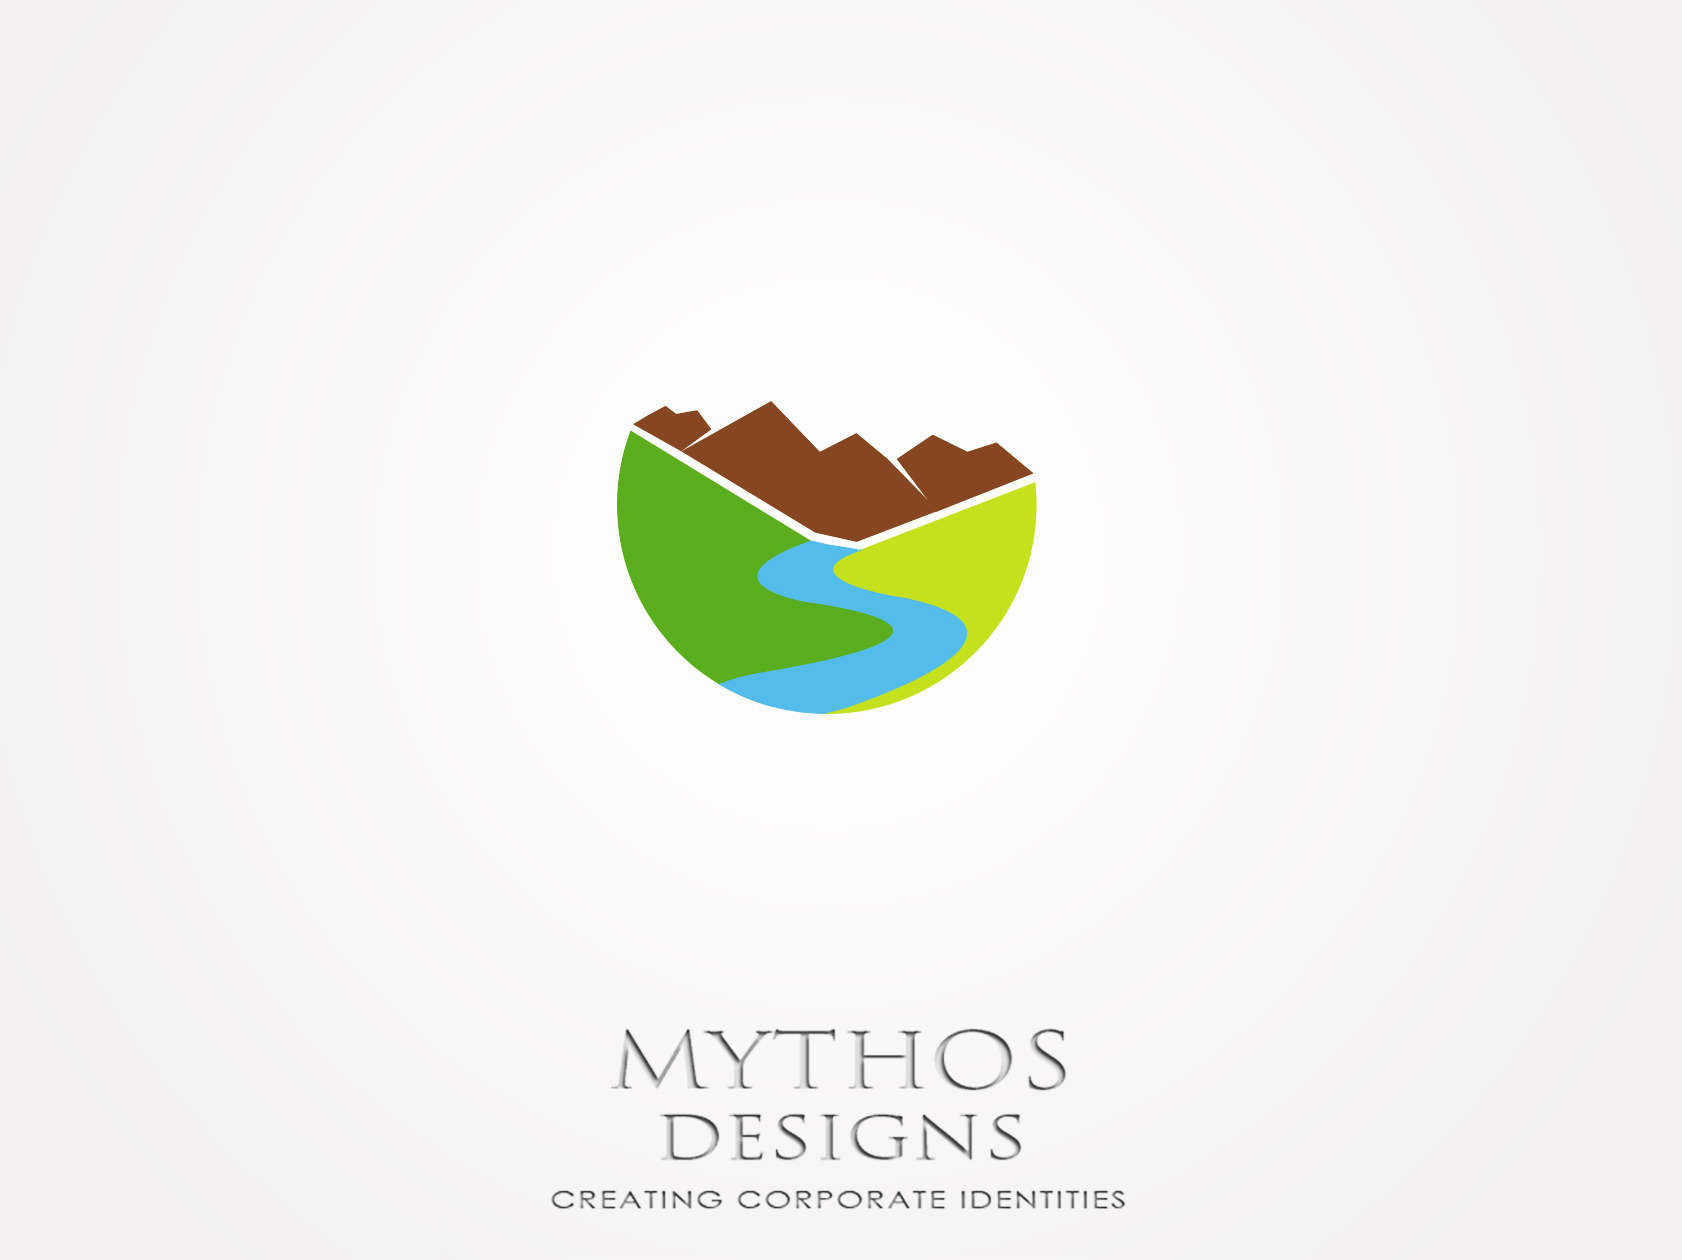 Logo Design by Mythos Designs - Entry No. 23 in the Logo Design Contest Manitoba Conservation Districts Logo Design.